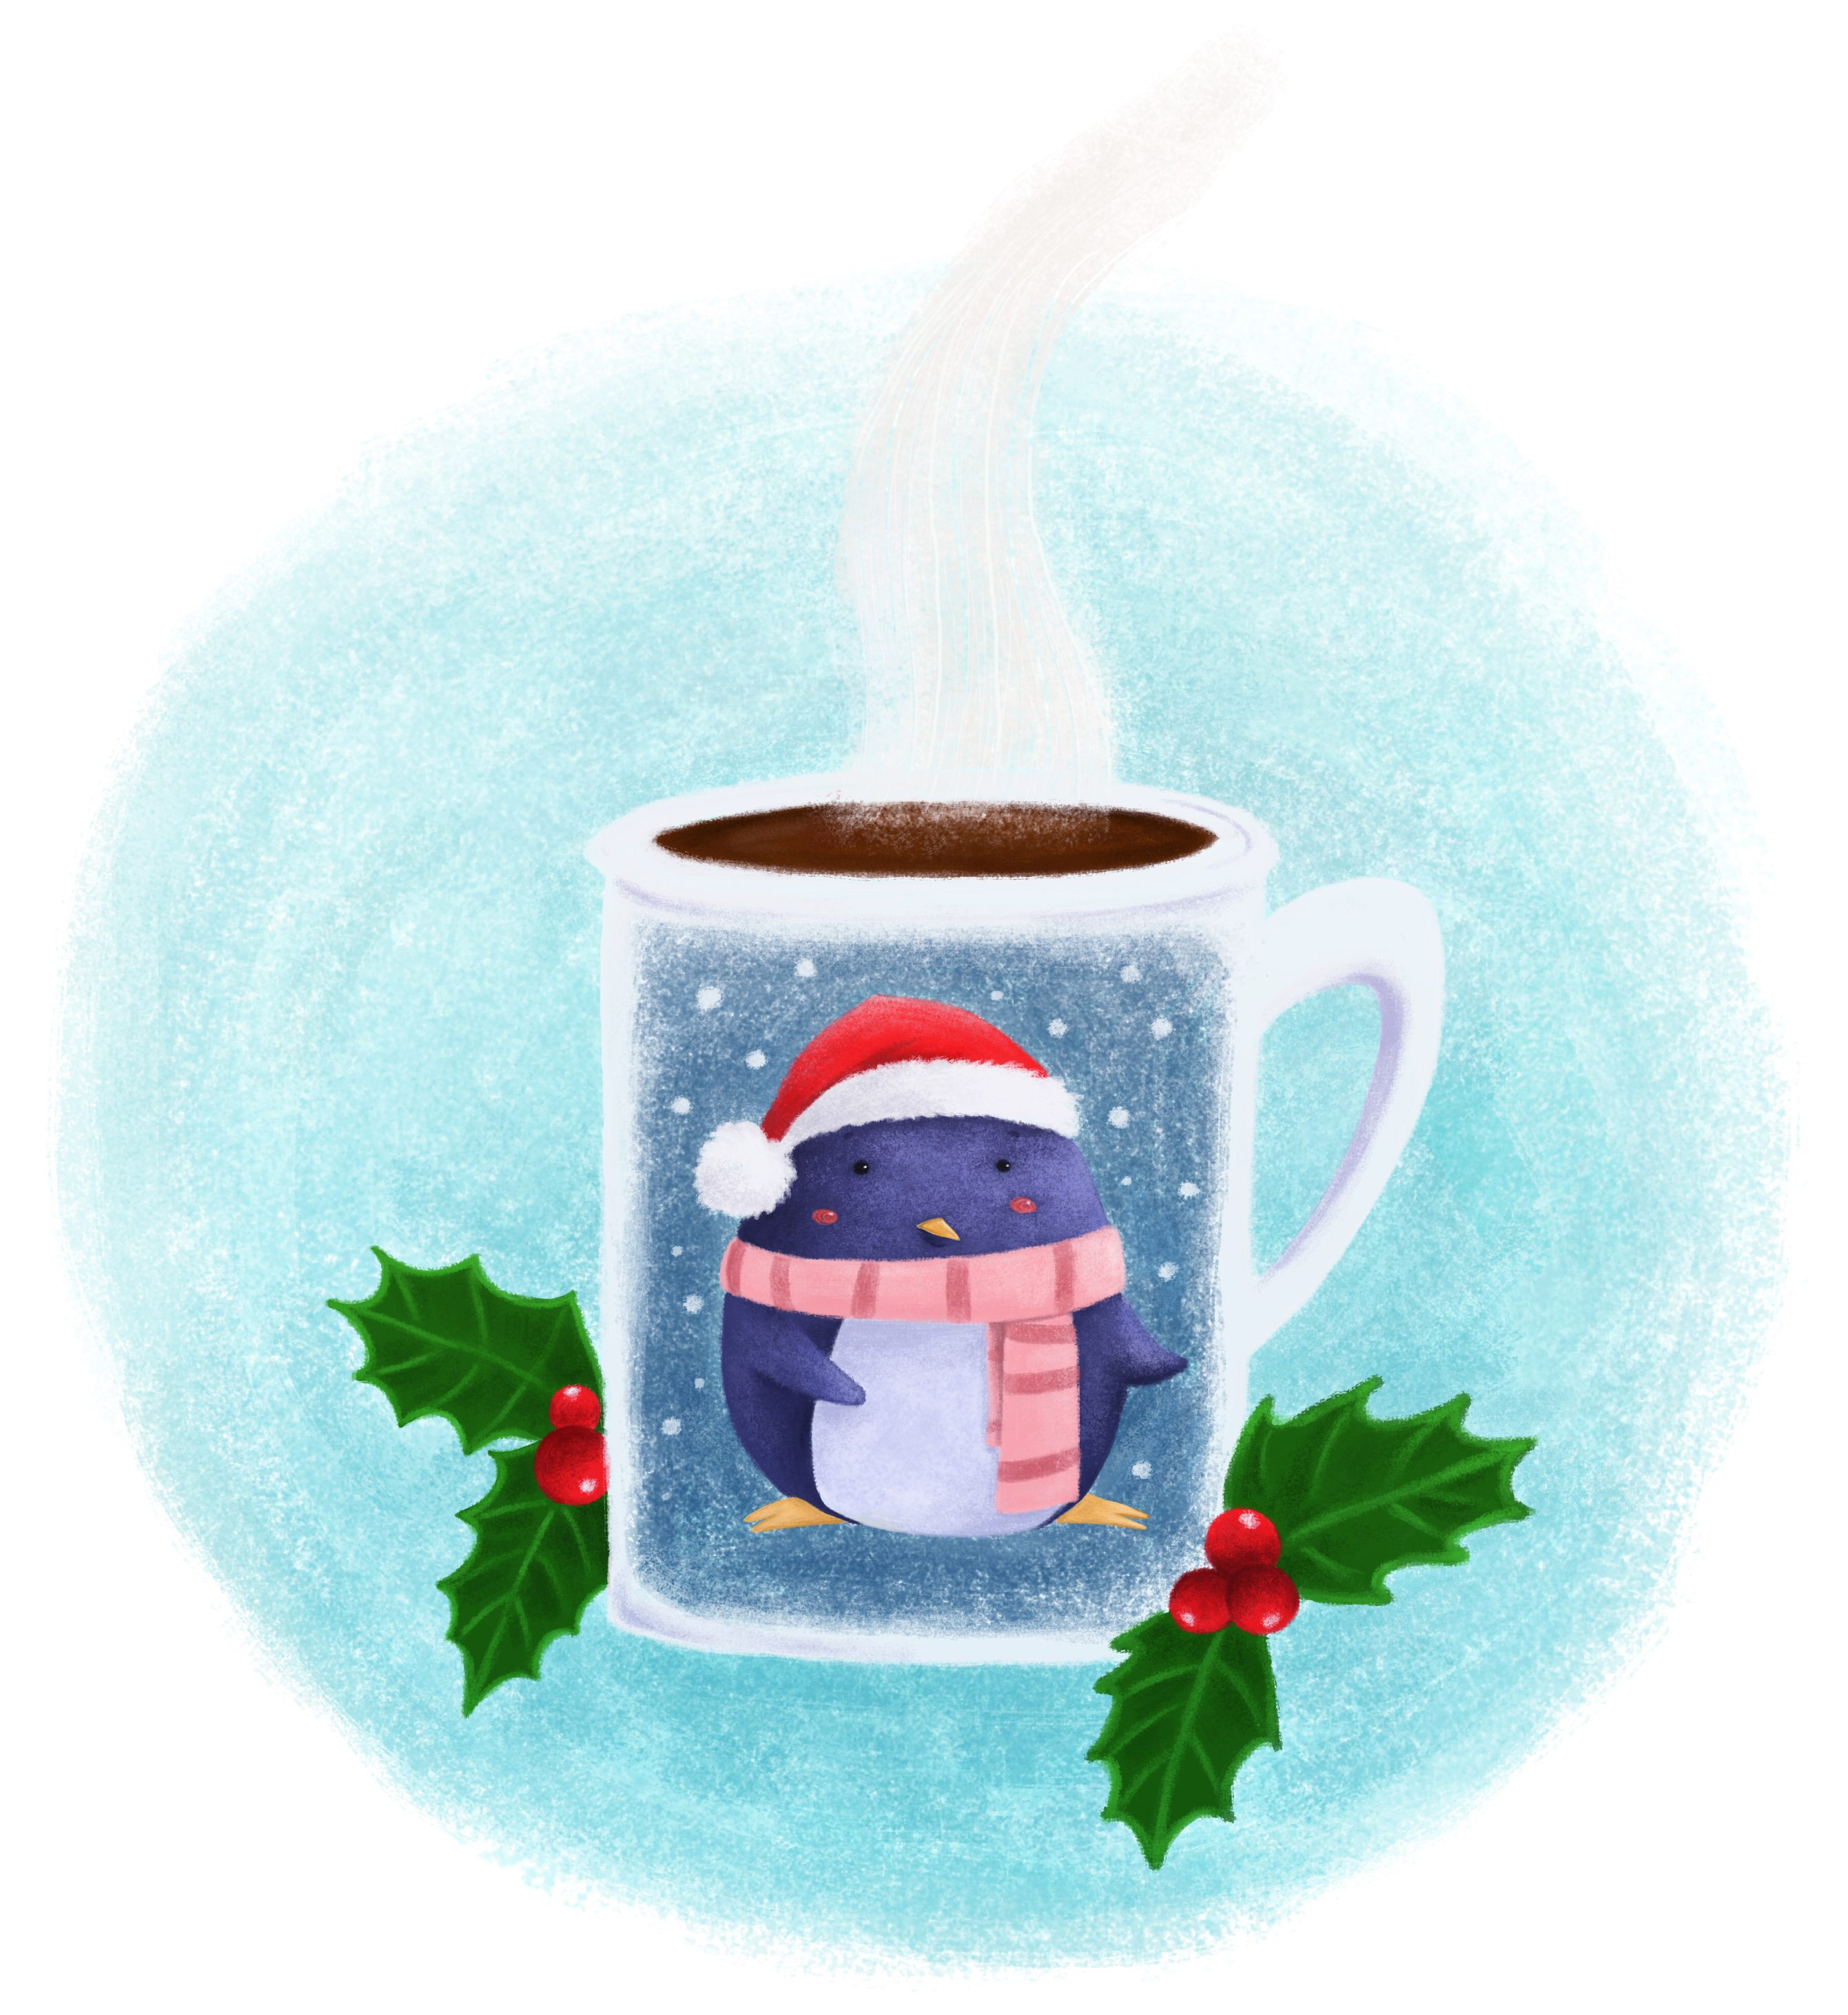 Christmas Mug Digital Illustration by Orgueil